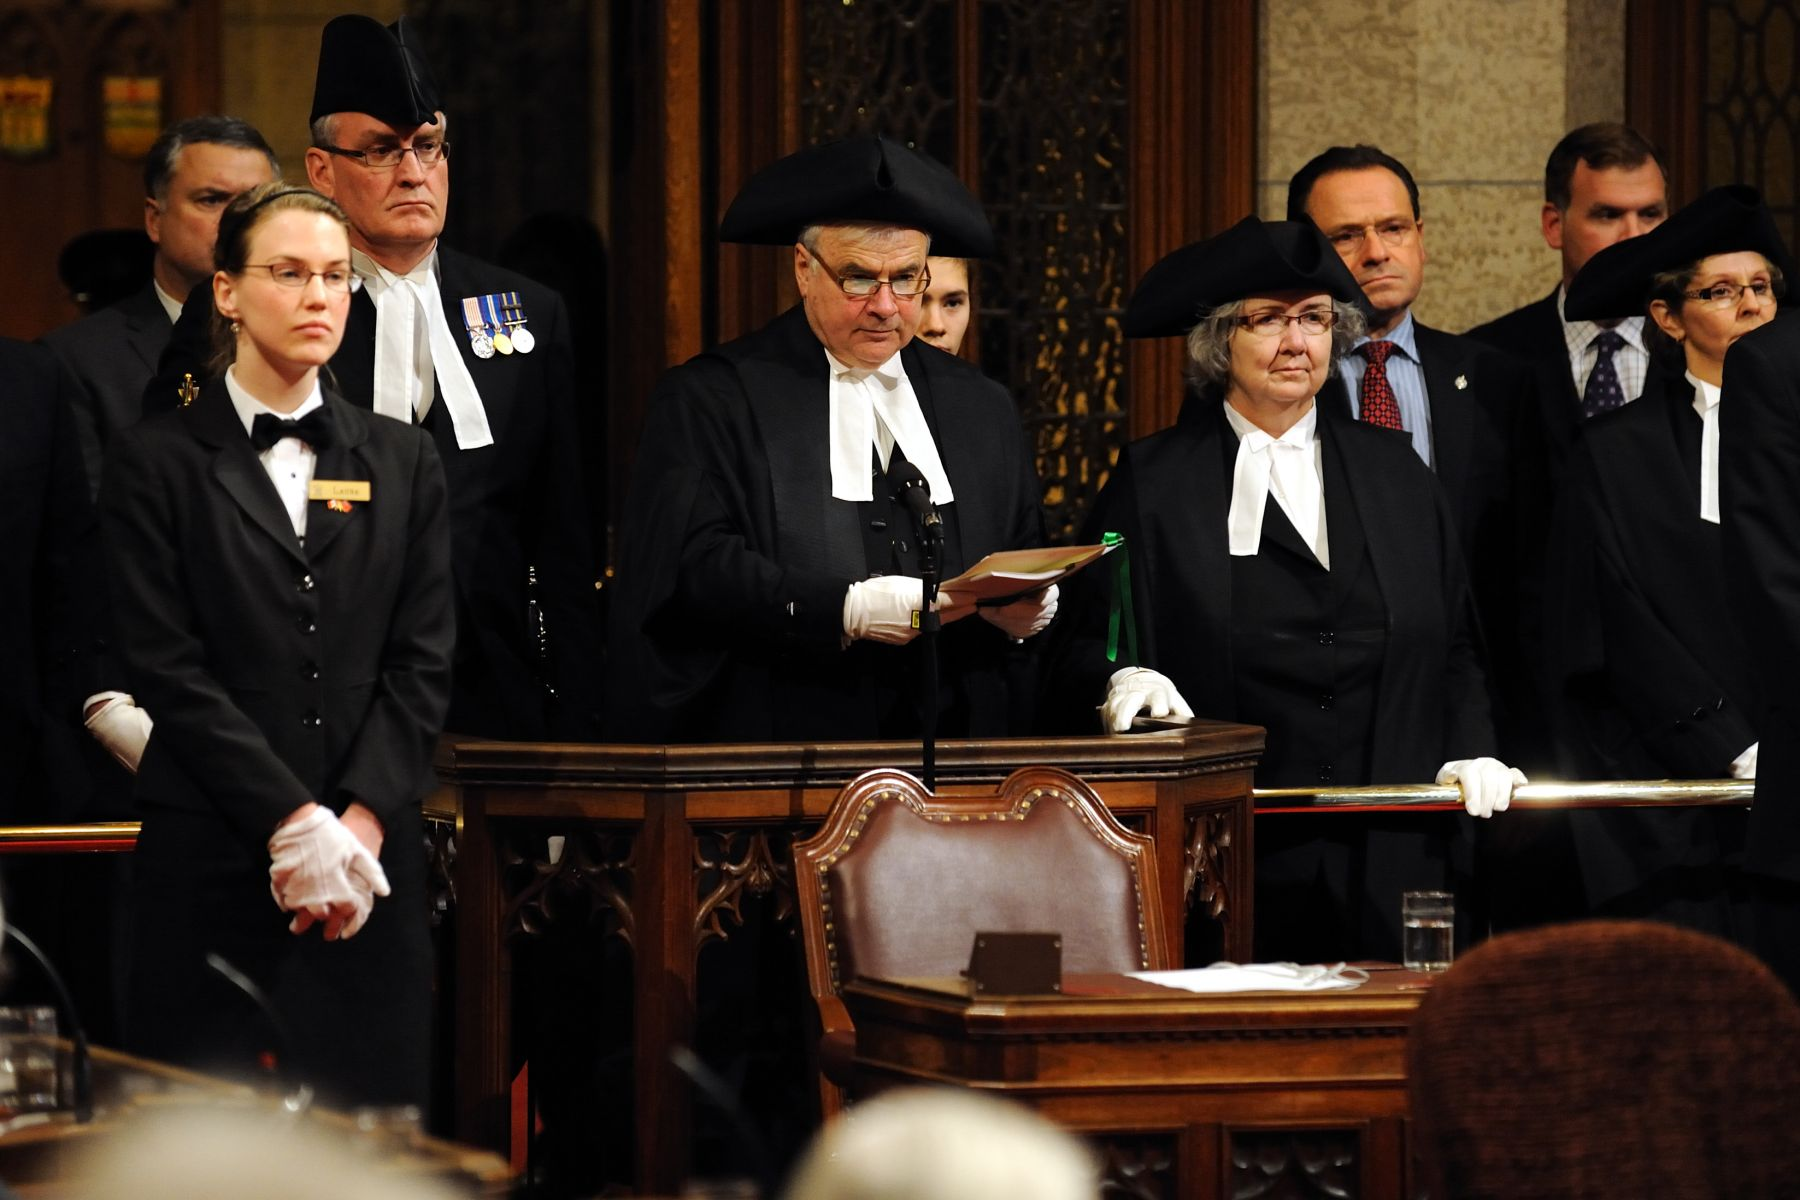 Since the Royal Assent Act of 2002, it may be signified by a written declaration by the governor general or by a deputy of the governor general (one of the justices of the Supreme Court).